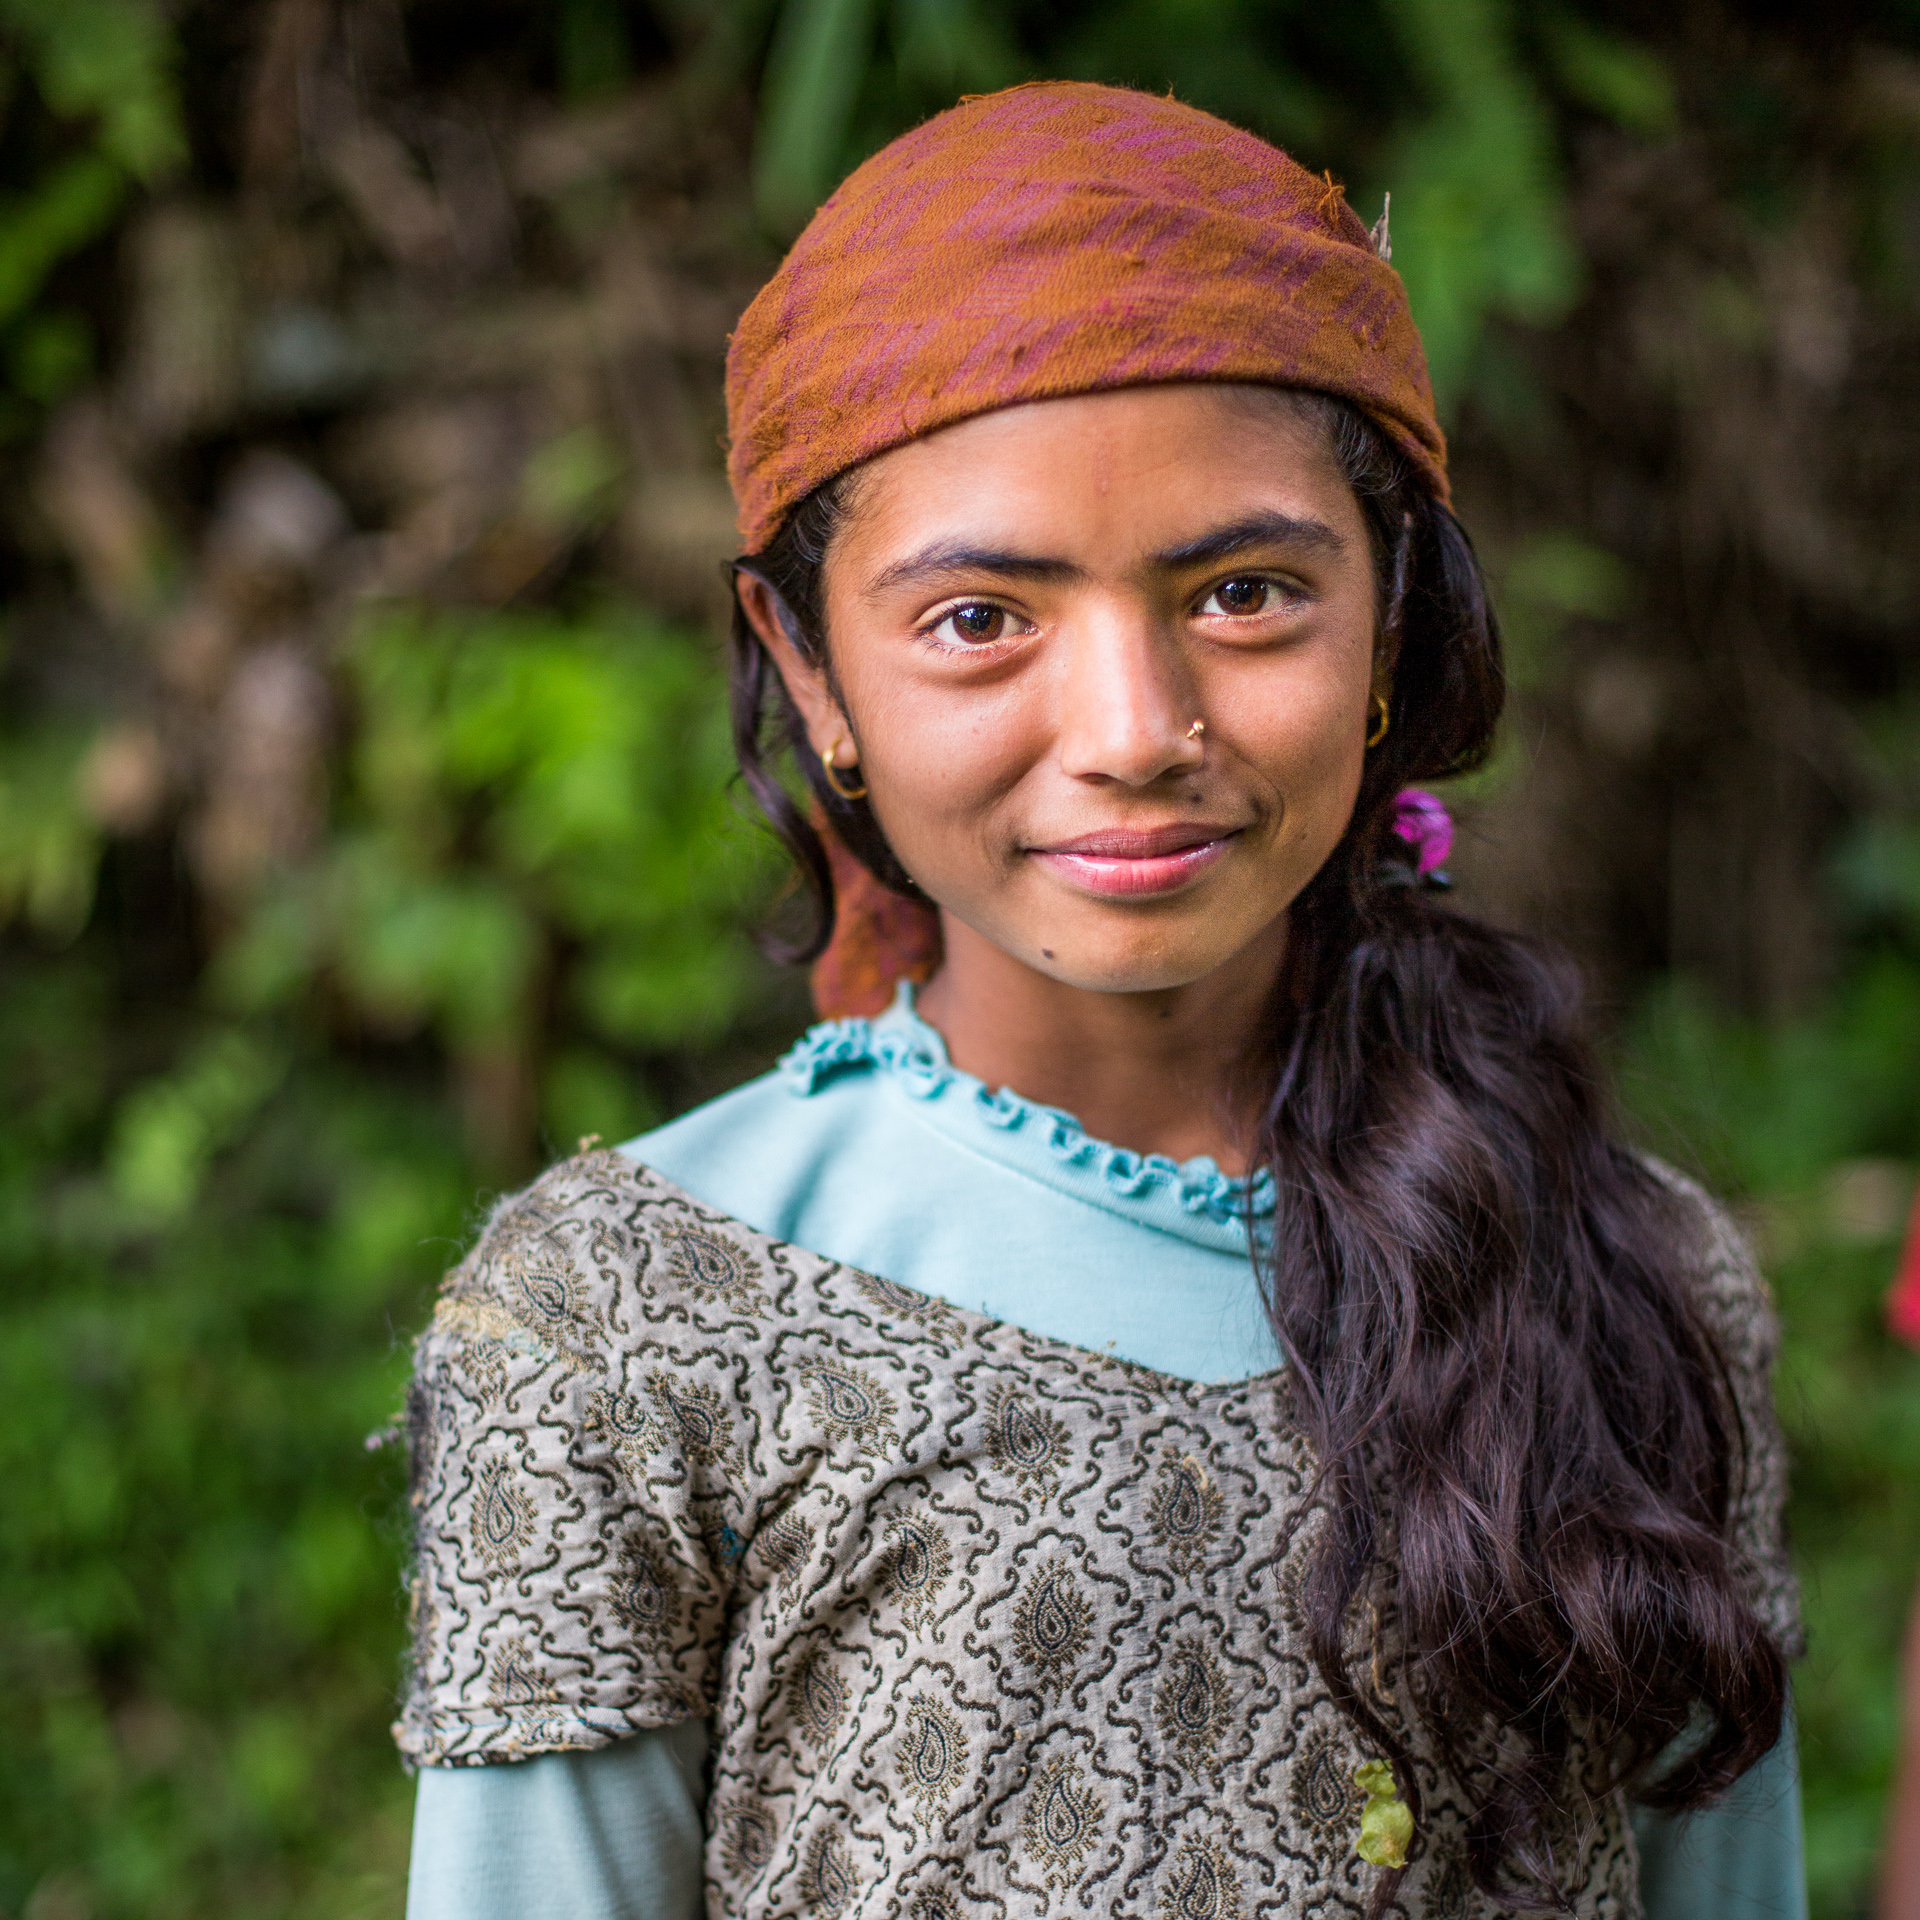 Children are excused from school to help their parents in this busy rice planting season.